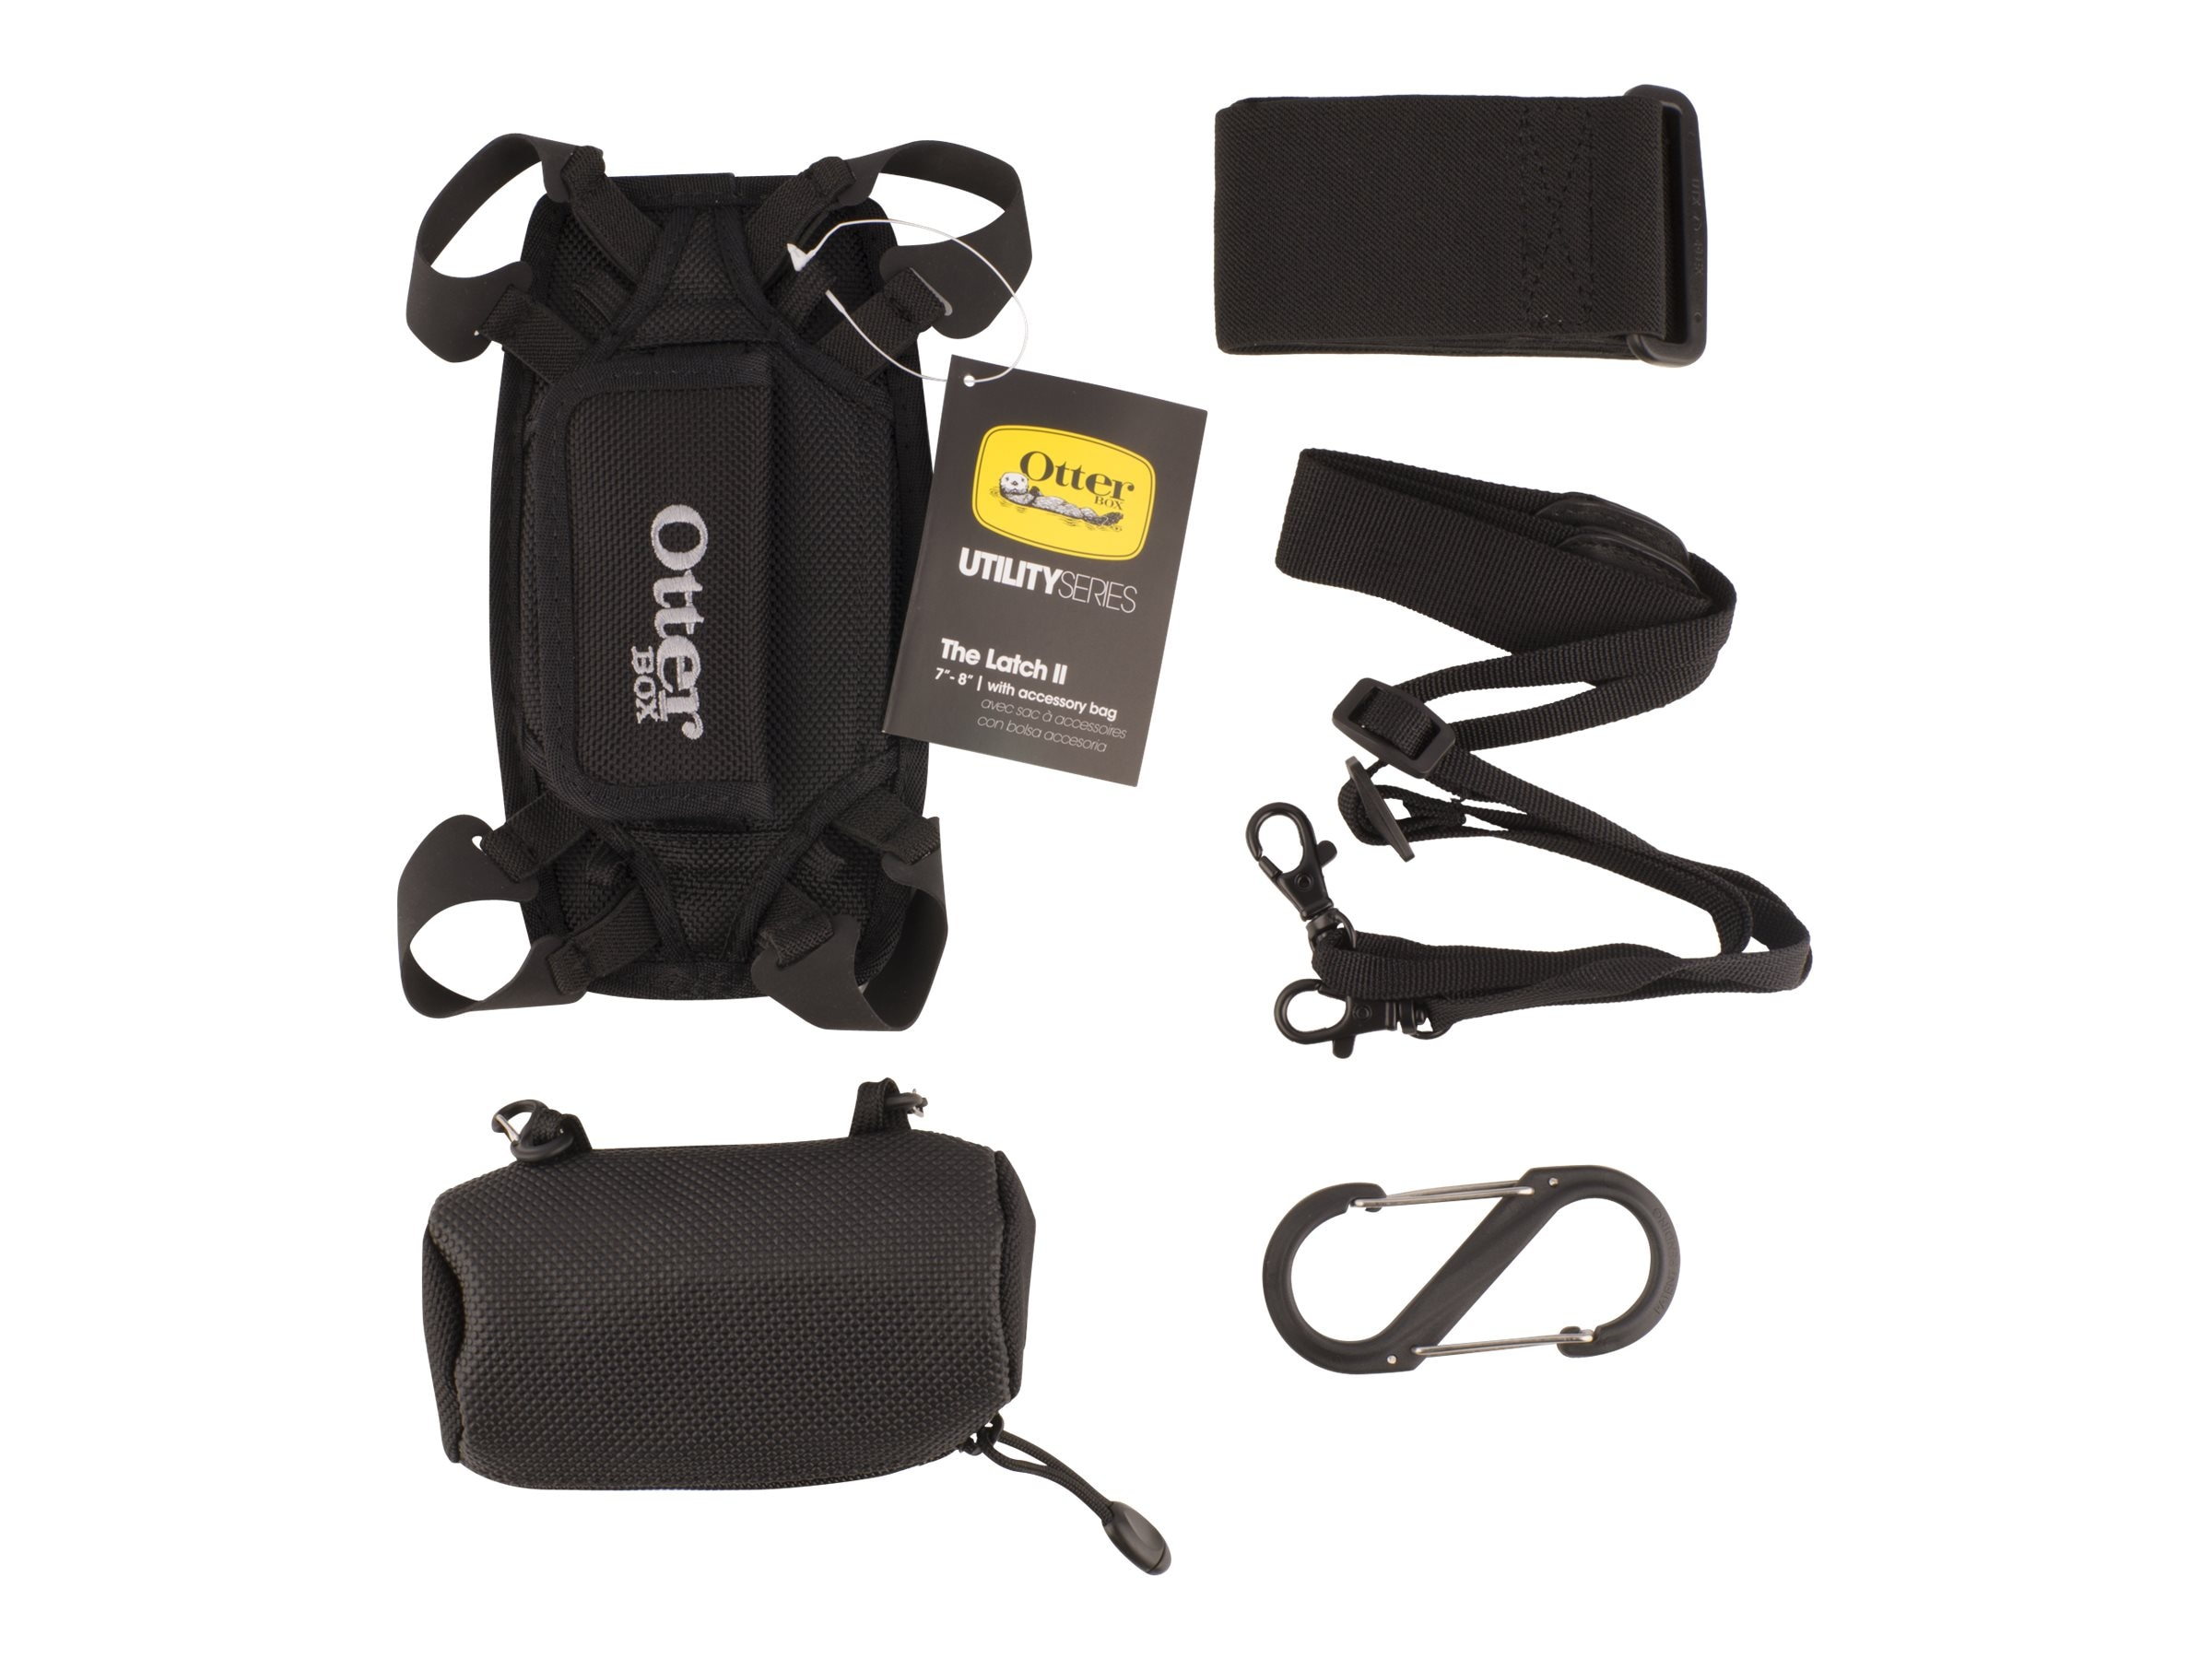 OtterBox Utility Latch II Pro Pack 7-8 w  Accessory Bag